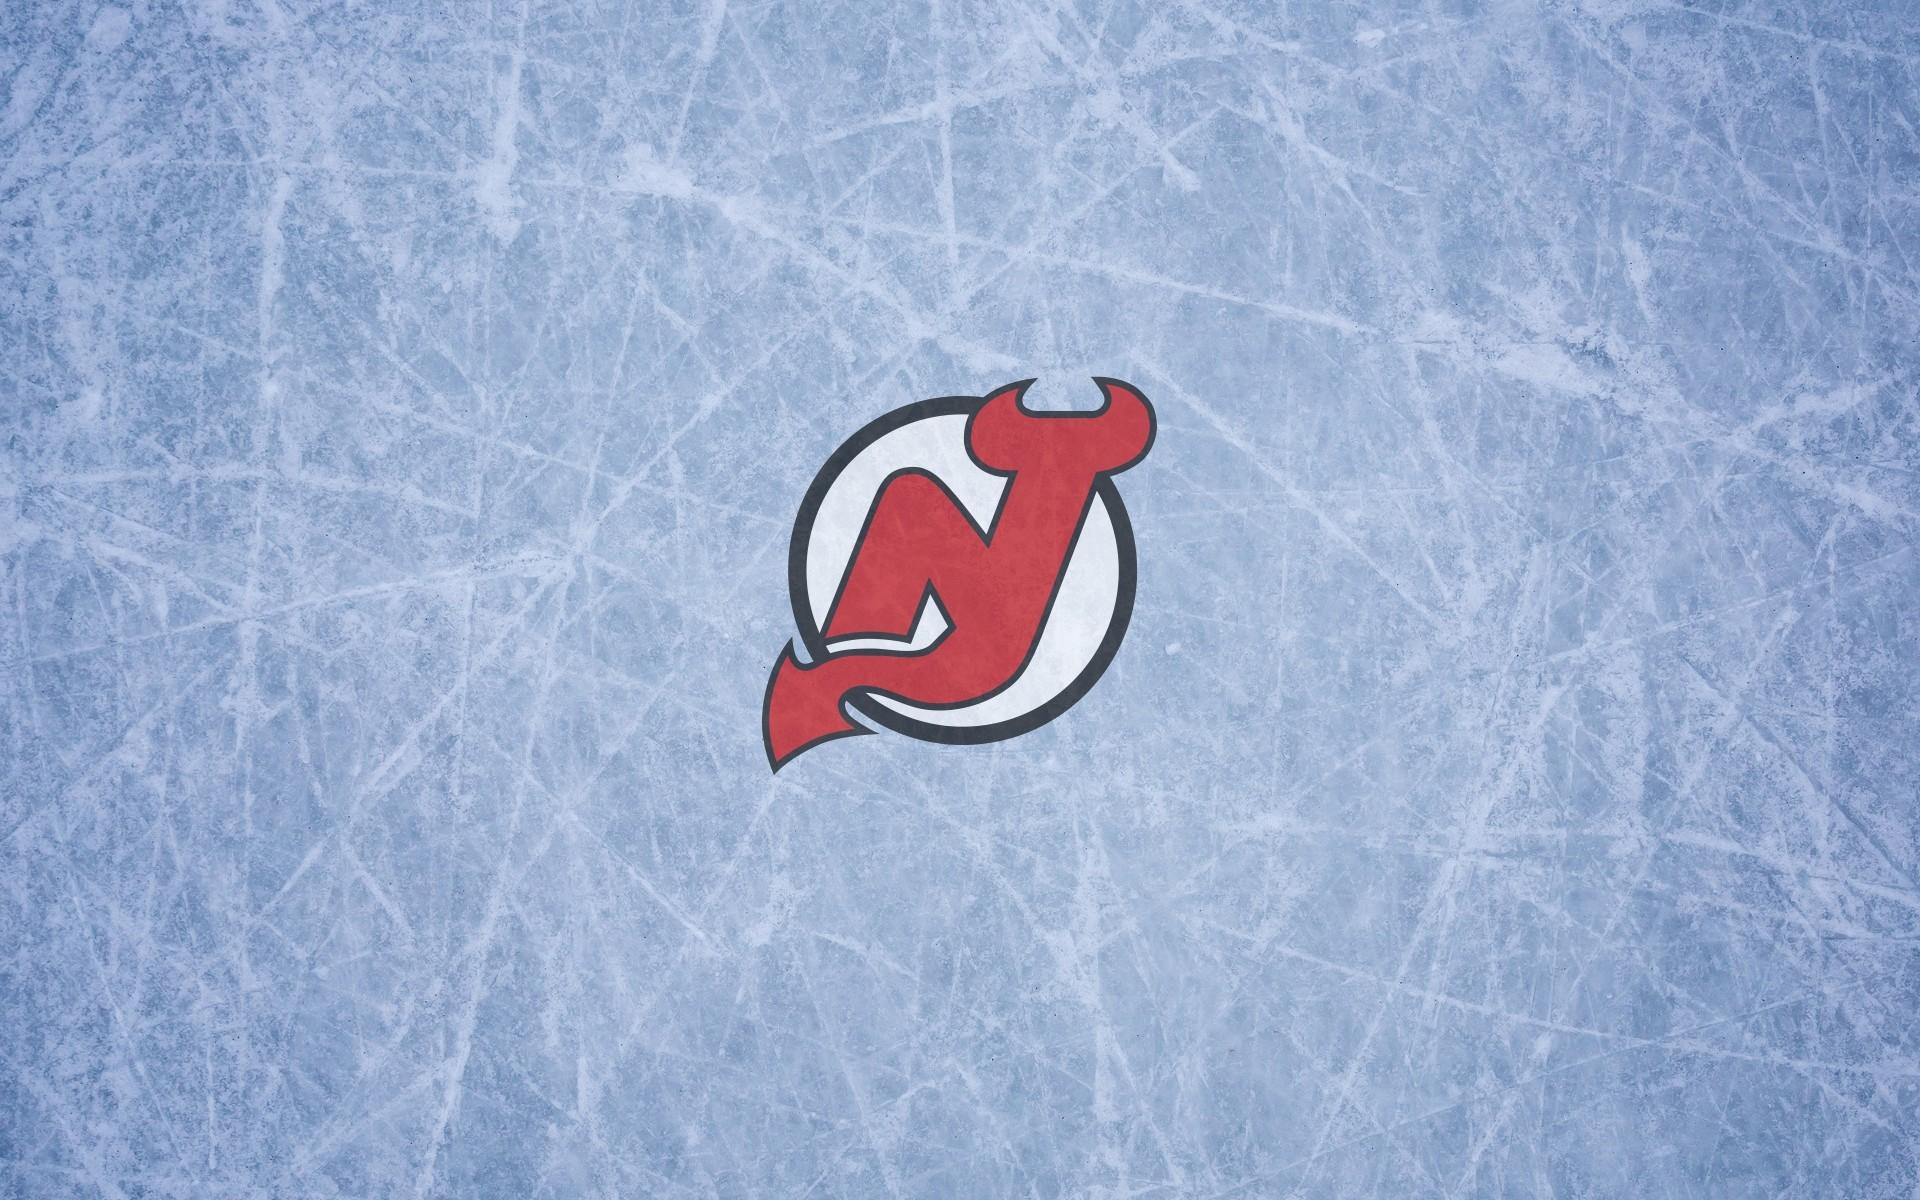 1920x1200 New Jersey Devils wallpaper with logo on the ice, widescreen, ,  16x10